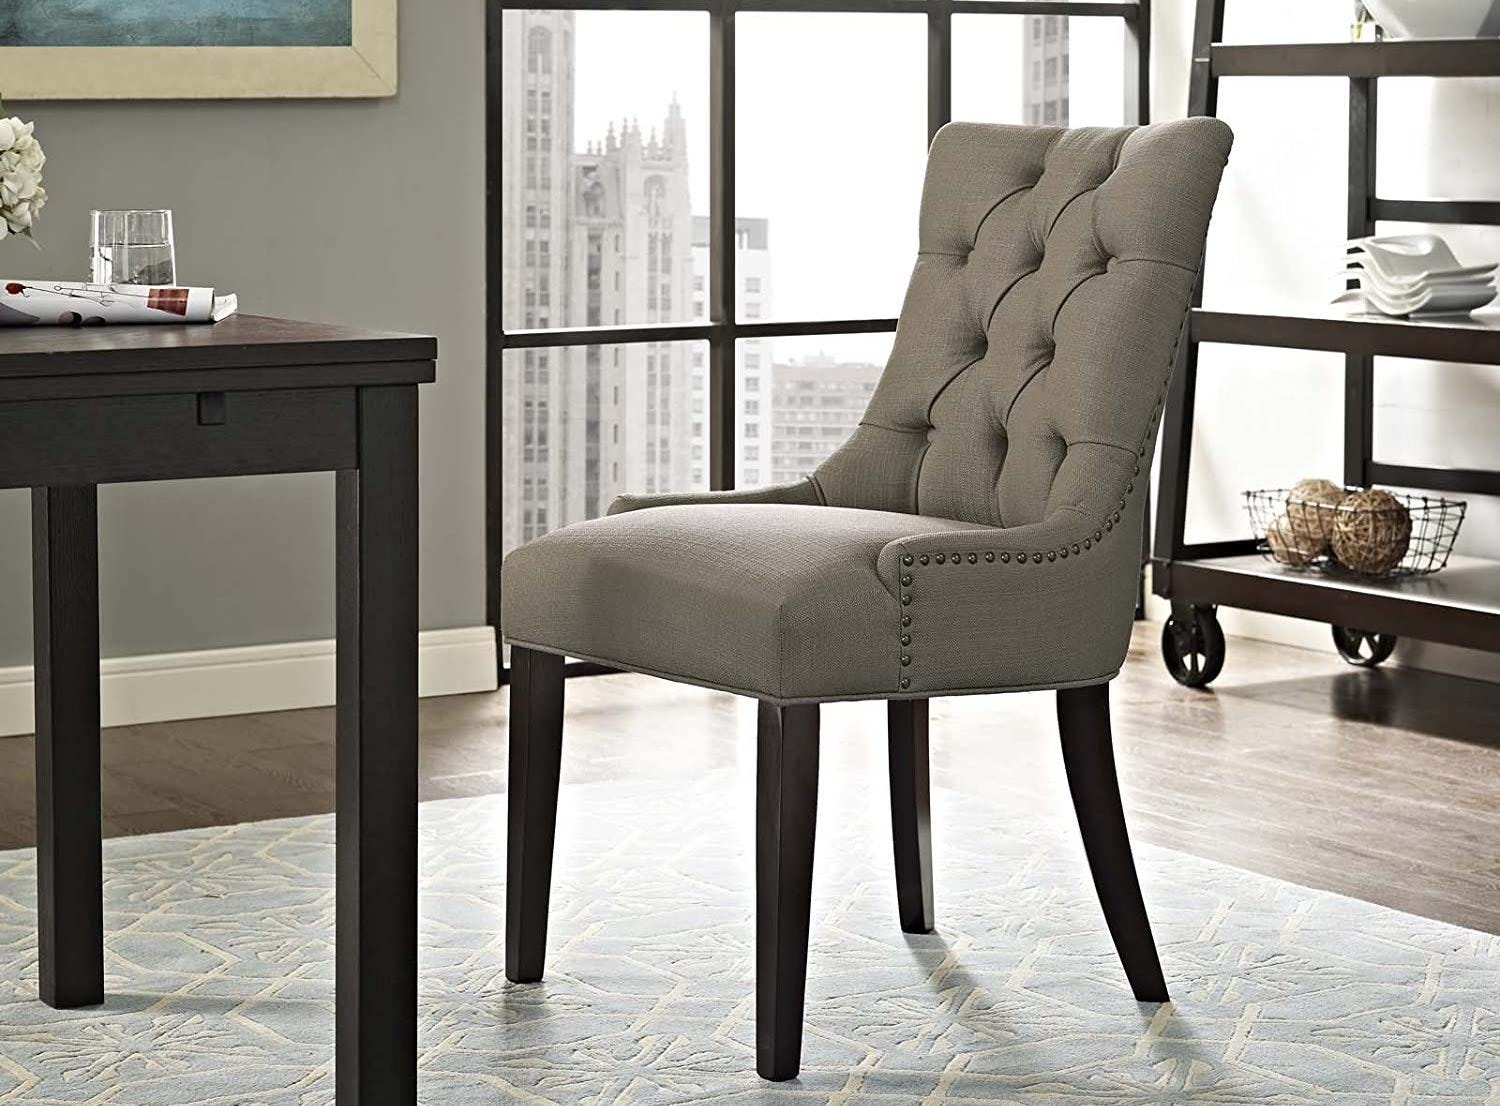 The Modway Regent Modern Elegant Button-Tufted chair in Granite sitting at a desk.